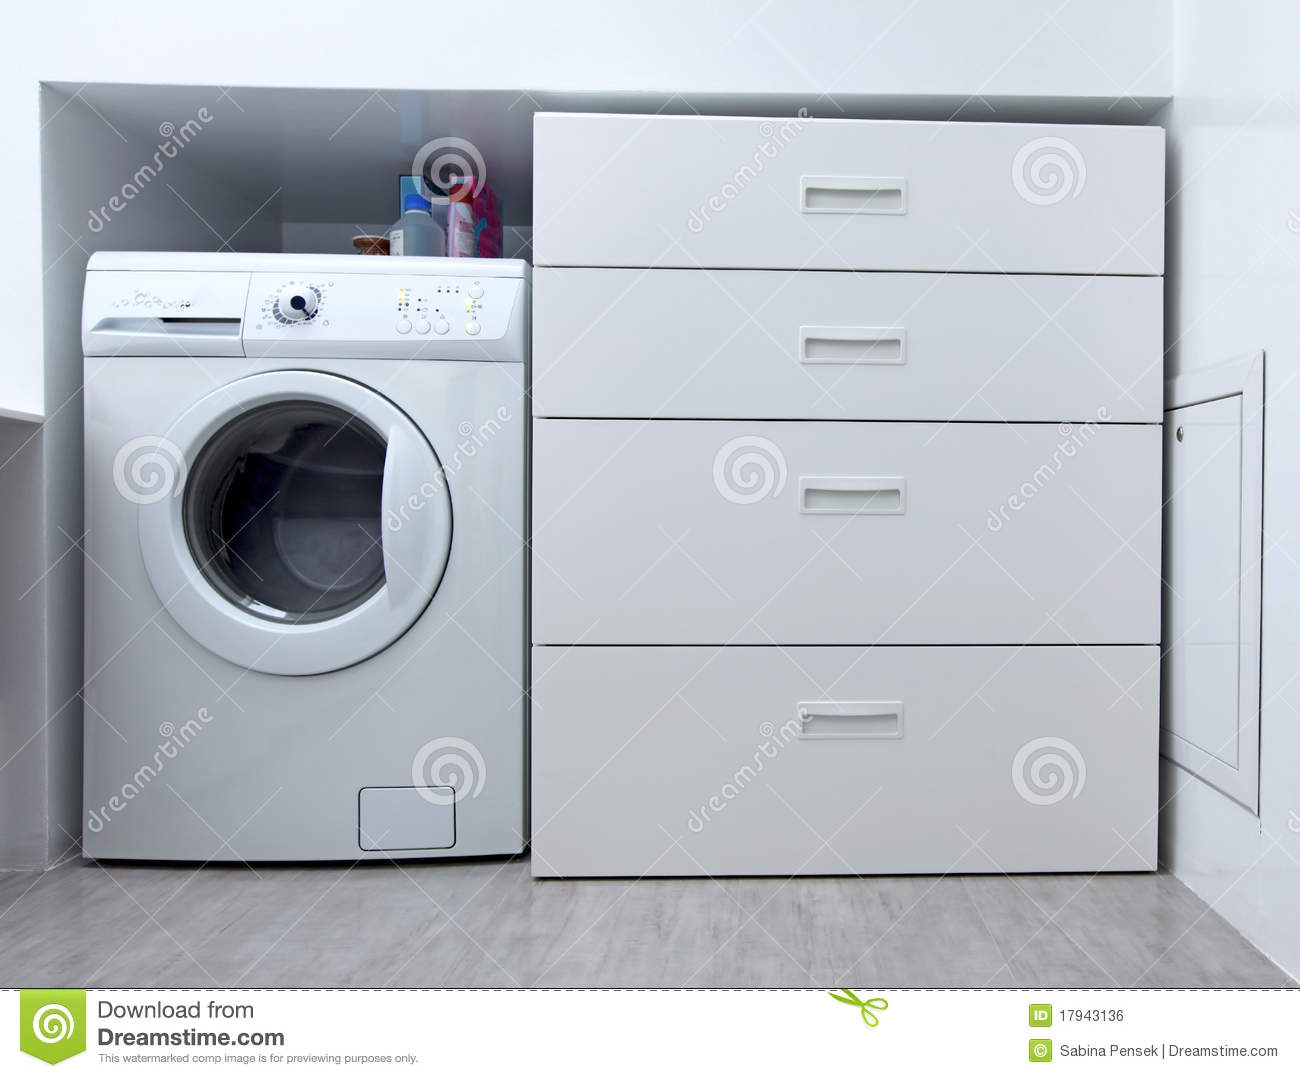 Washing Machine In The Bathroom Royalty Free Stock Image